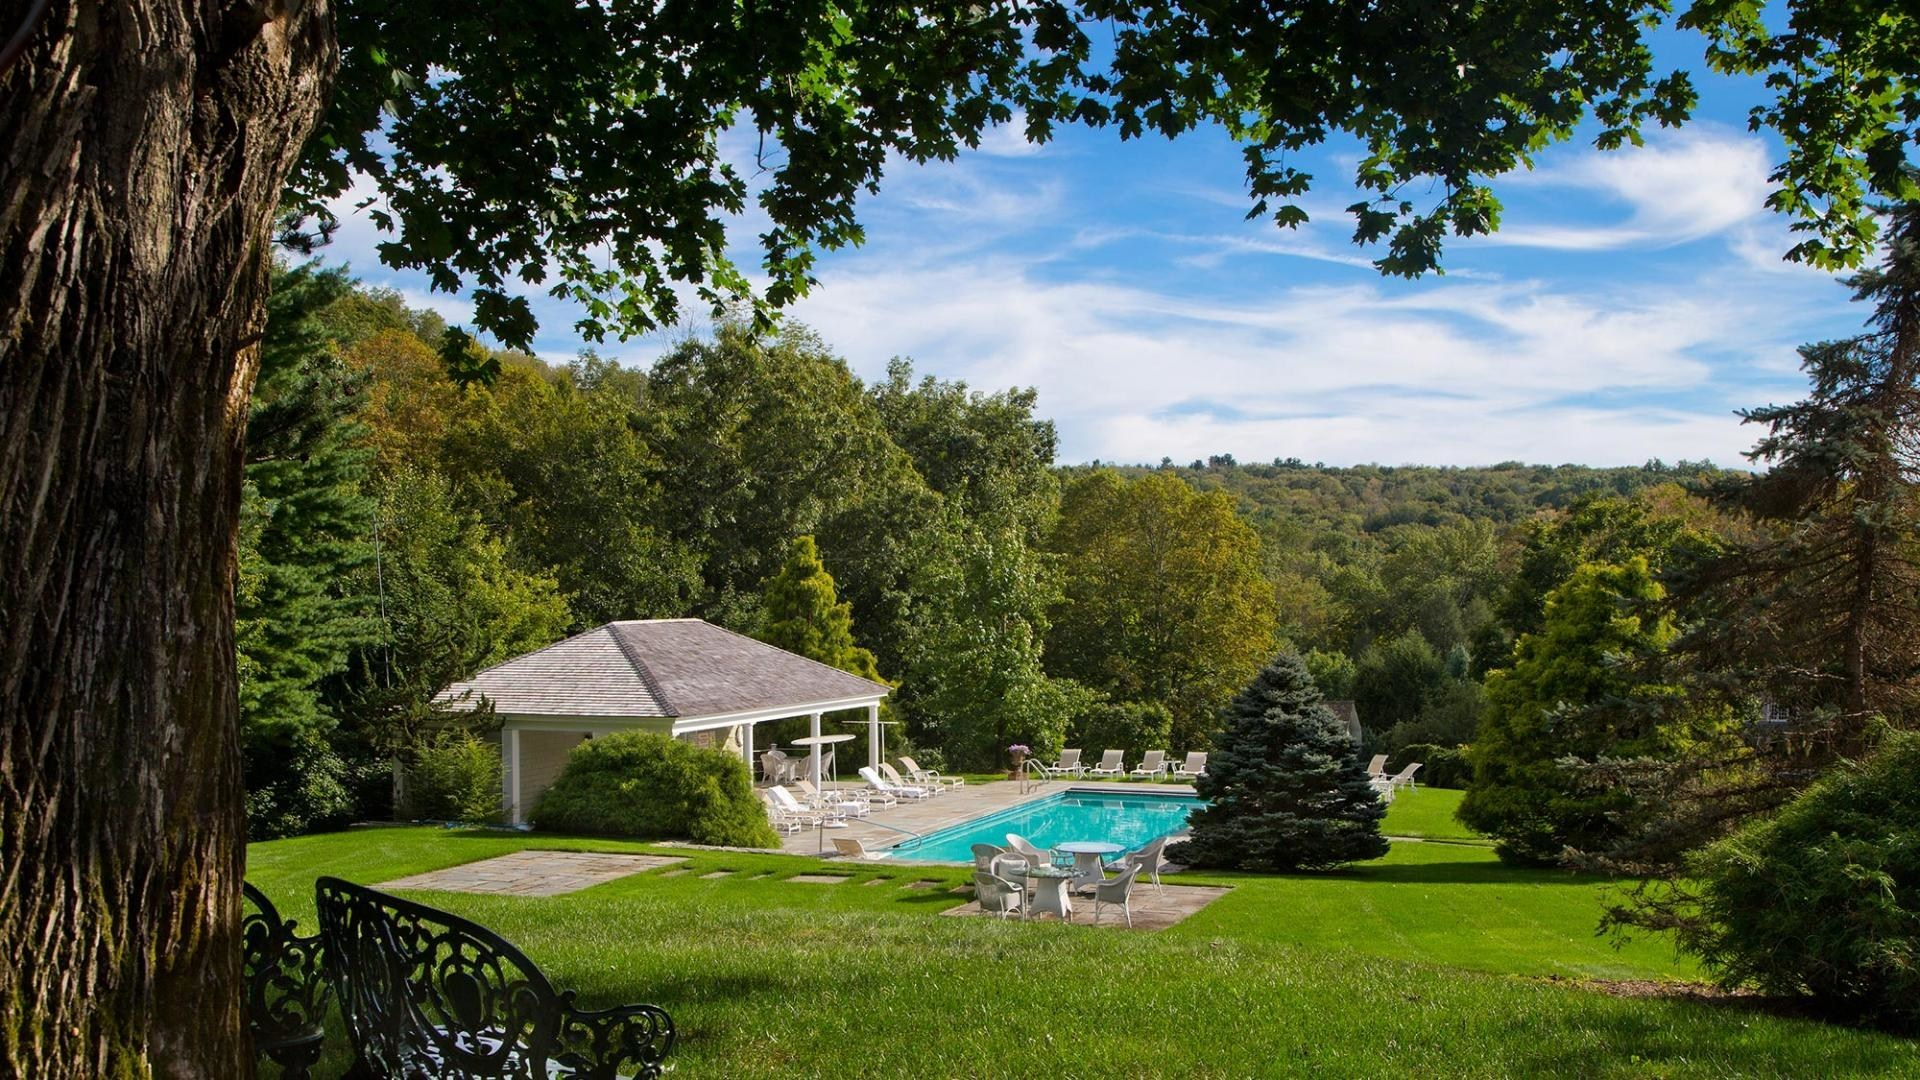 The Mayflower Inn and Spa is one of several exclusive getaways recommended by luxury travel advisors from Protravel International and Tzell Travel Group.